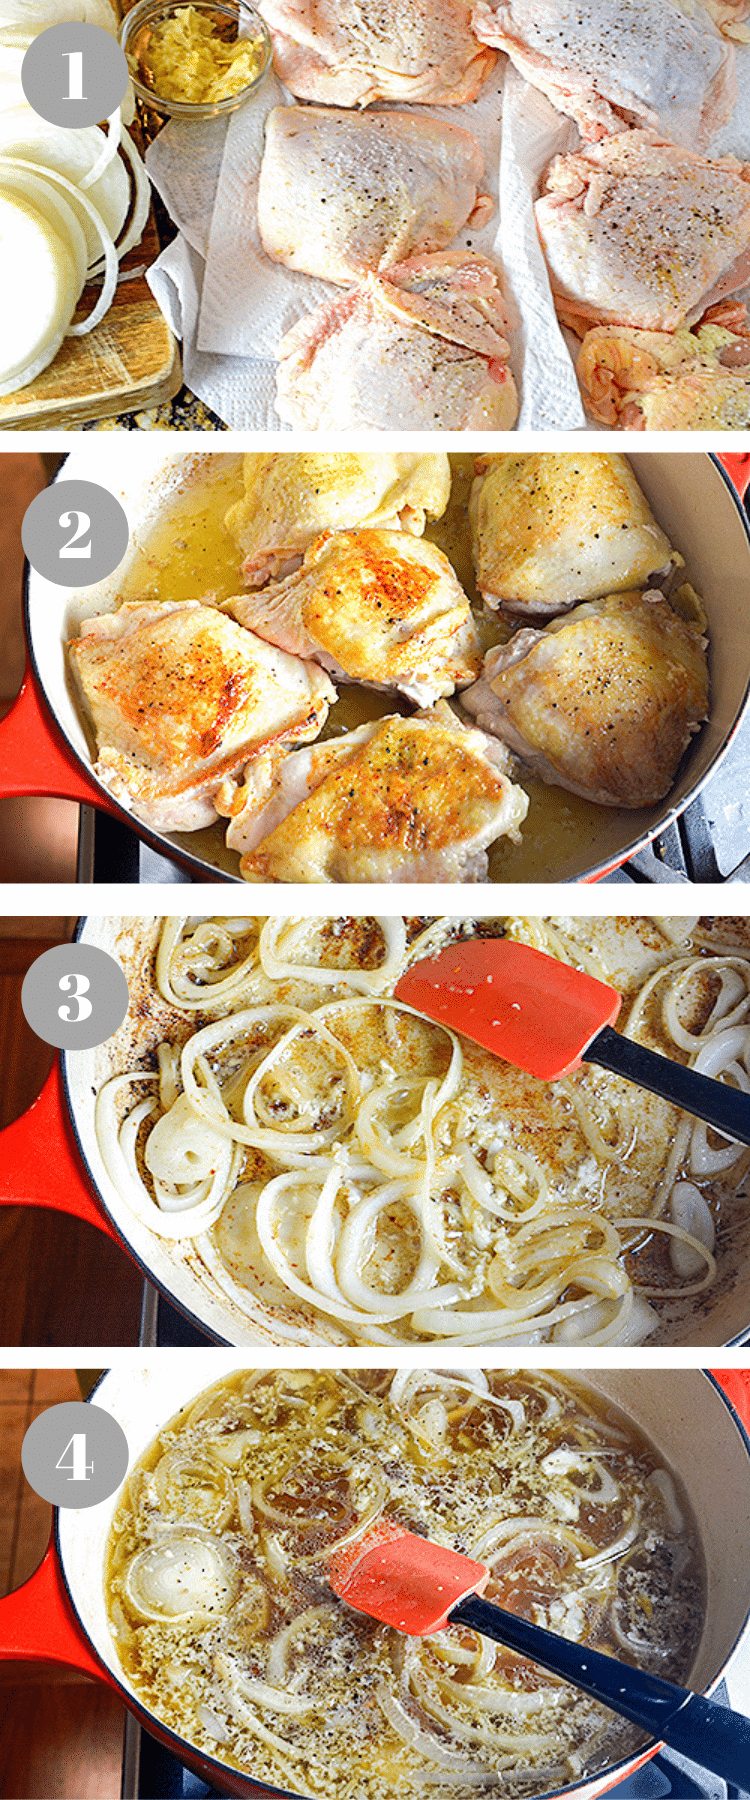 Patting chicken thighs dry, sauteeing onionsm and then searing the chicken in a pan,.,